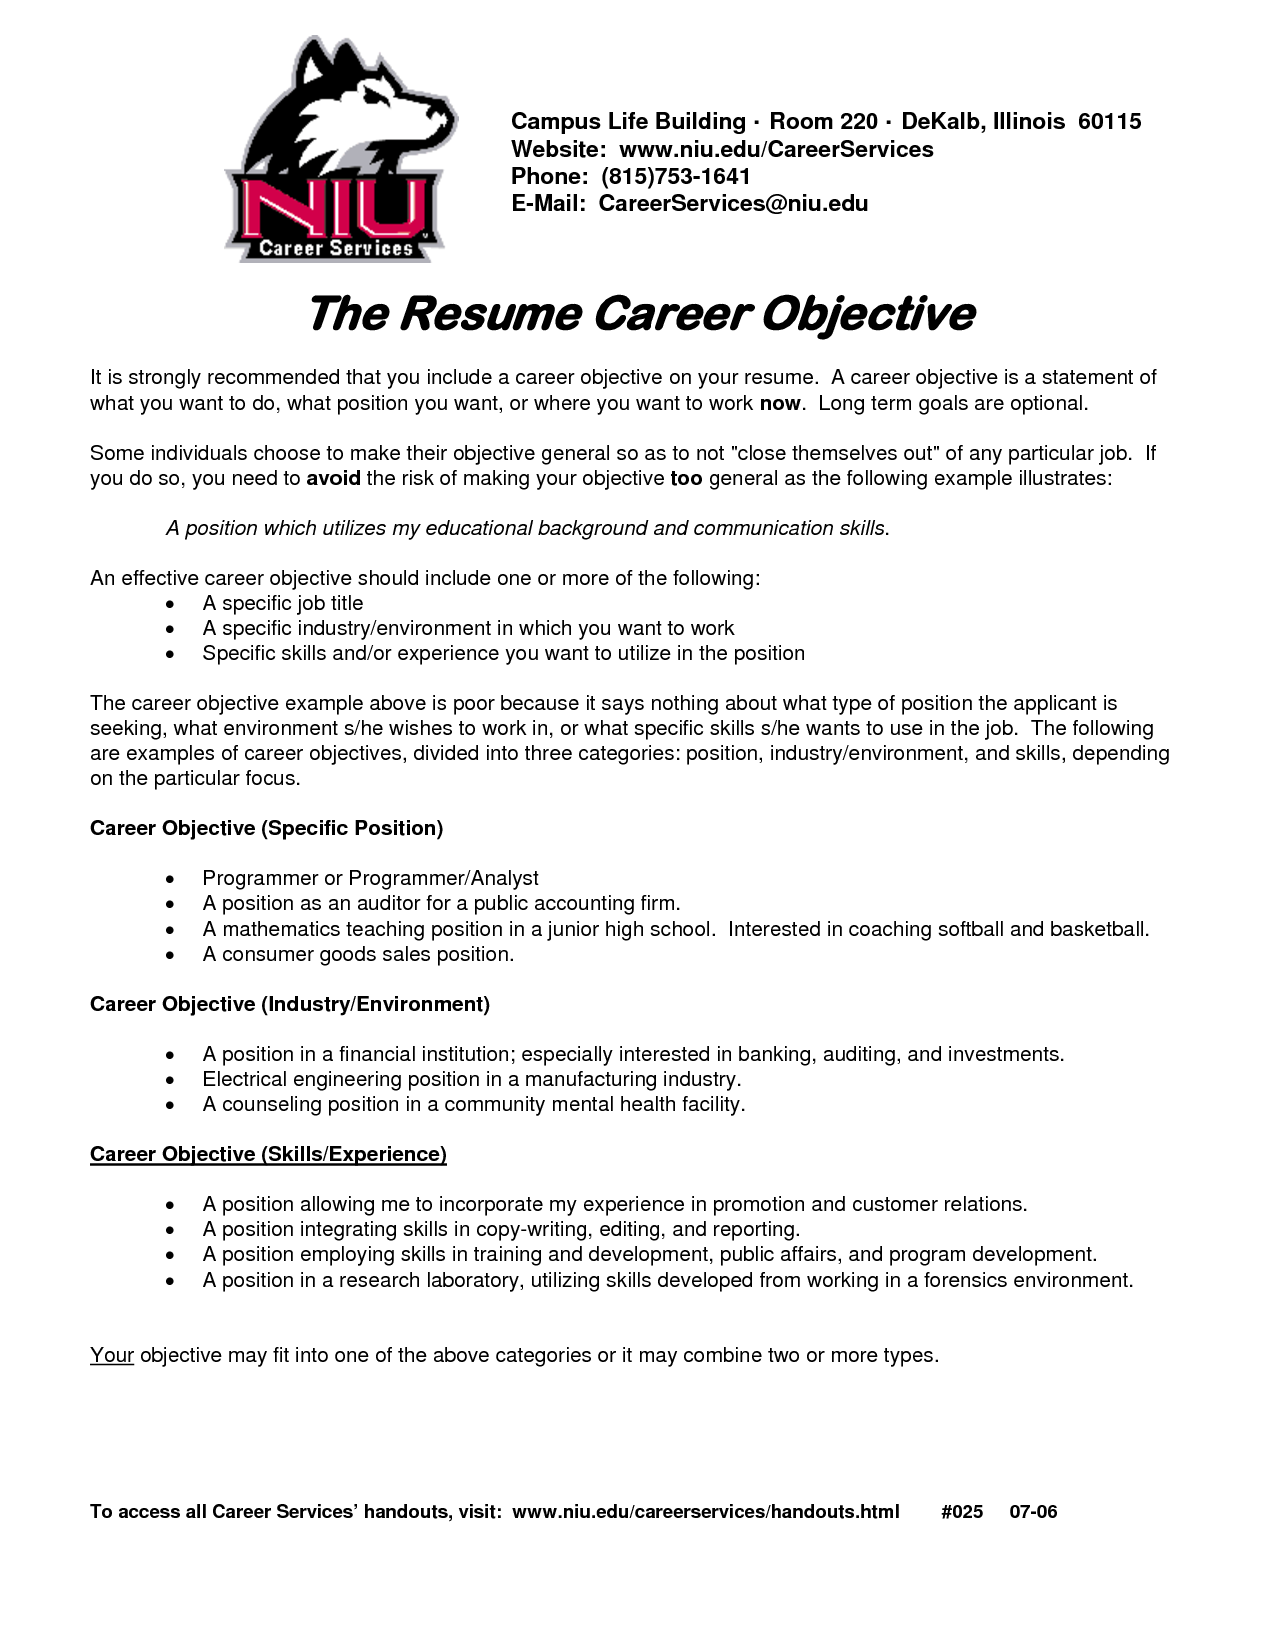 Redbox Receipt Career Objective Examples For Student Resume Career Change Resume  Custom Cash Receipt Books Excel with Invoice Me General  Ocr Receipt Scanner Excel